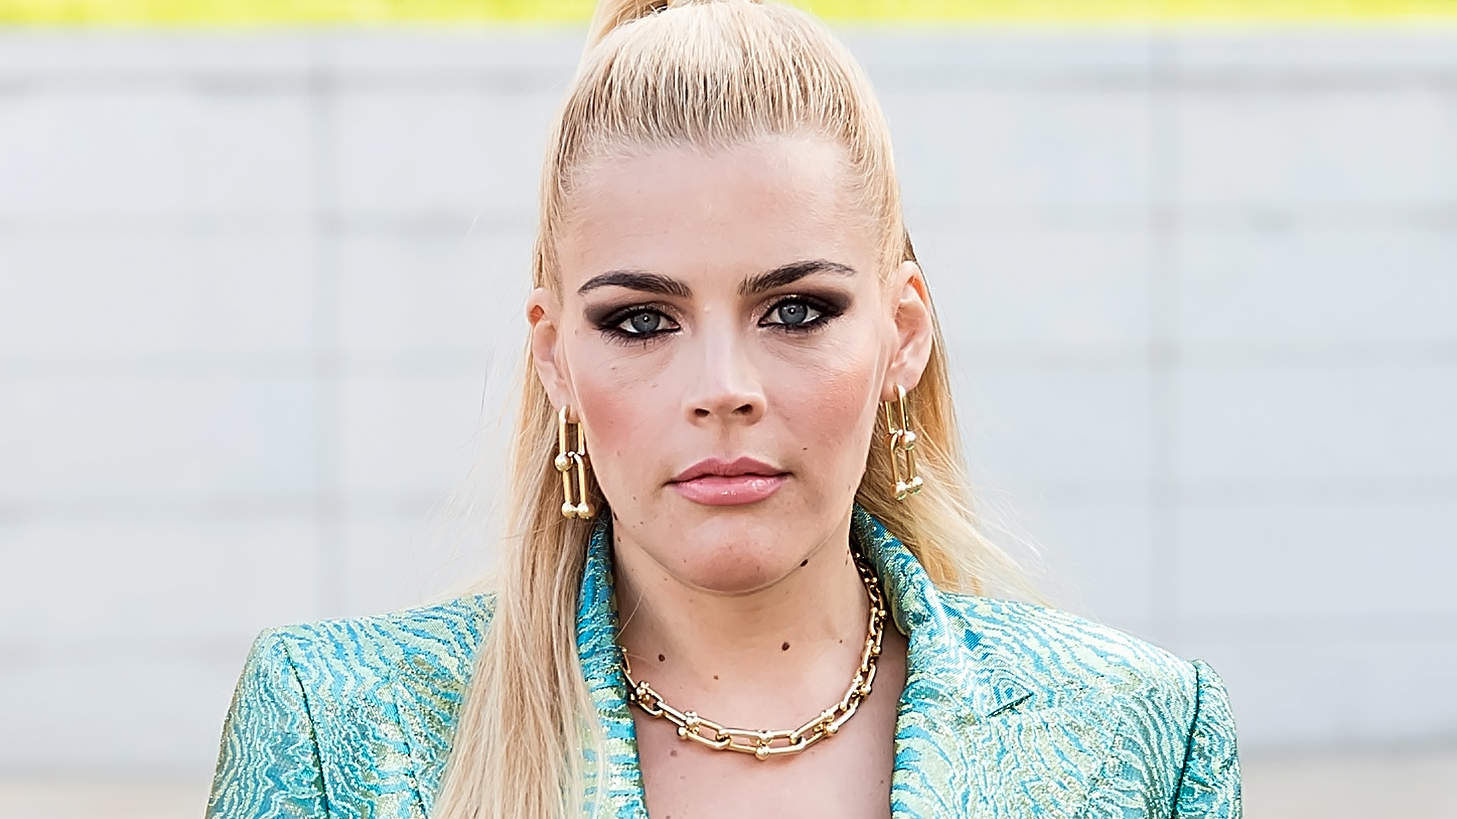 Busy Philipps Writes About Her Rape at 14 Years Old: 'It Was So, So Painful'